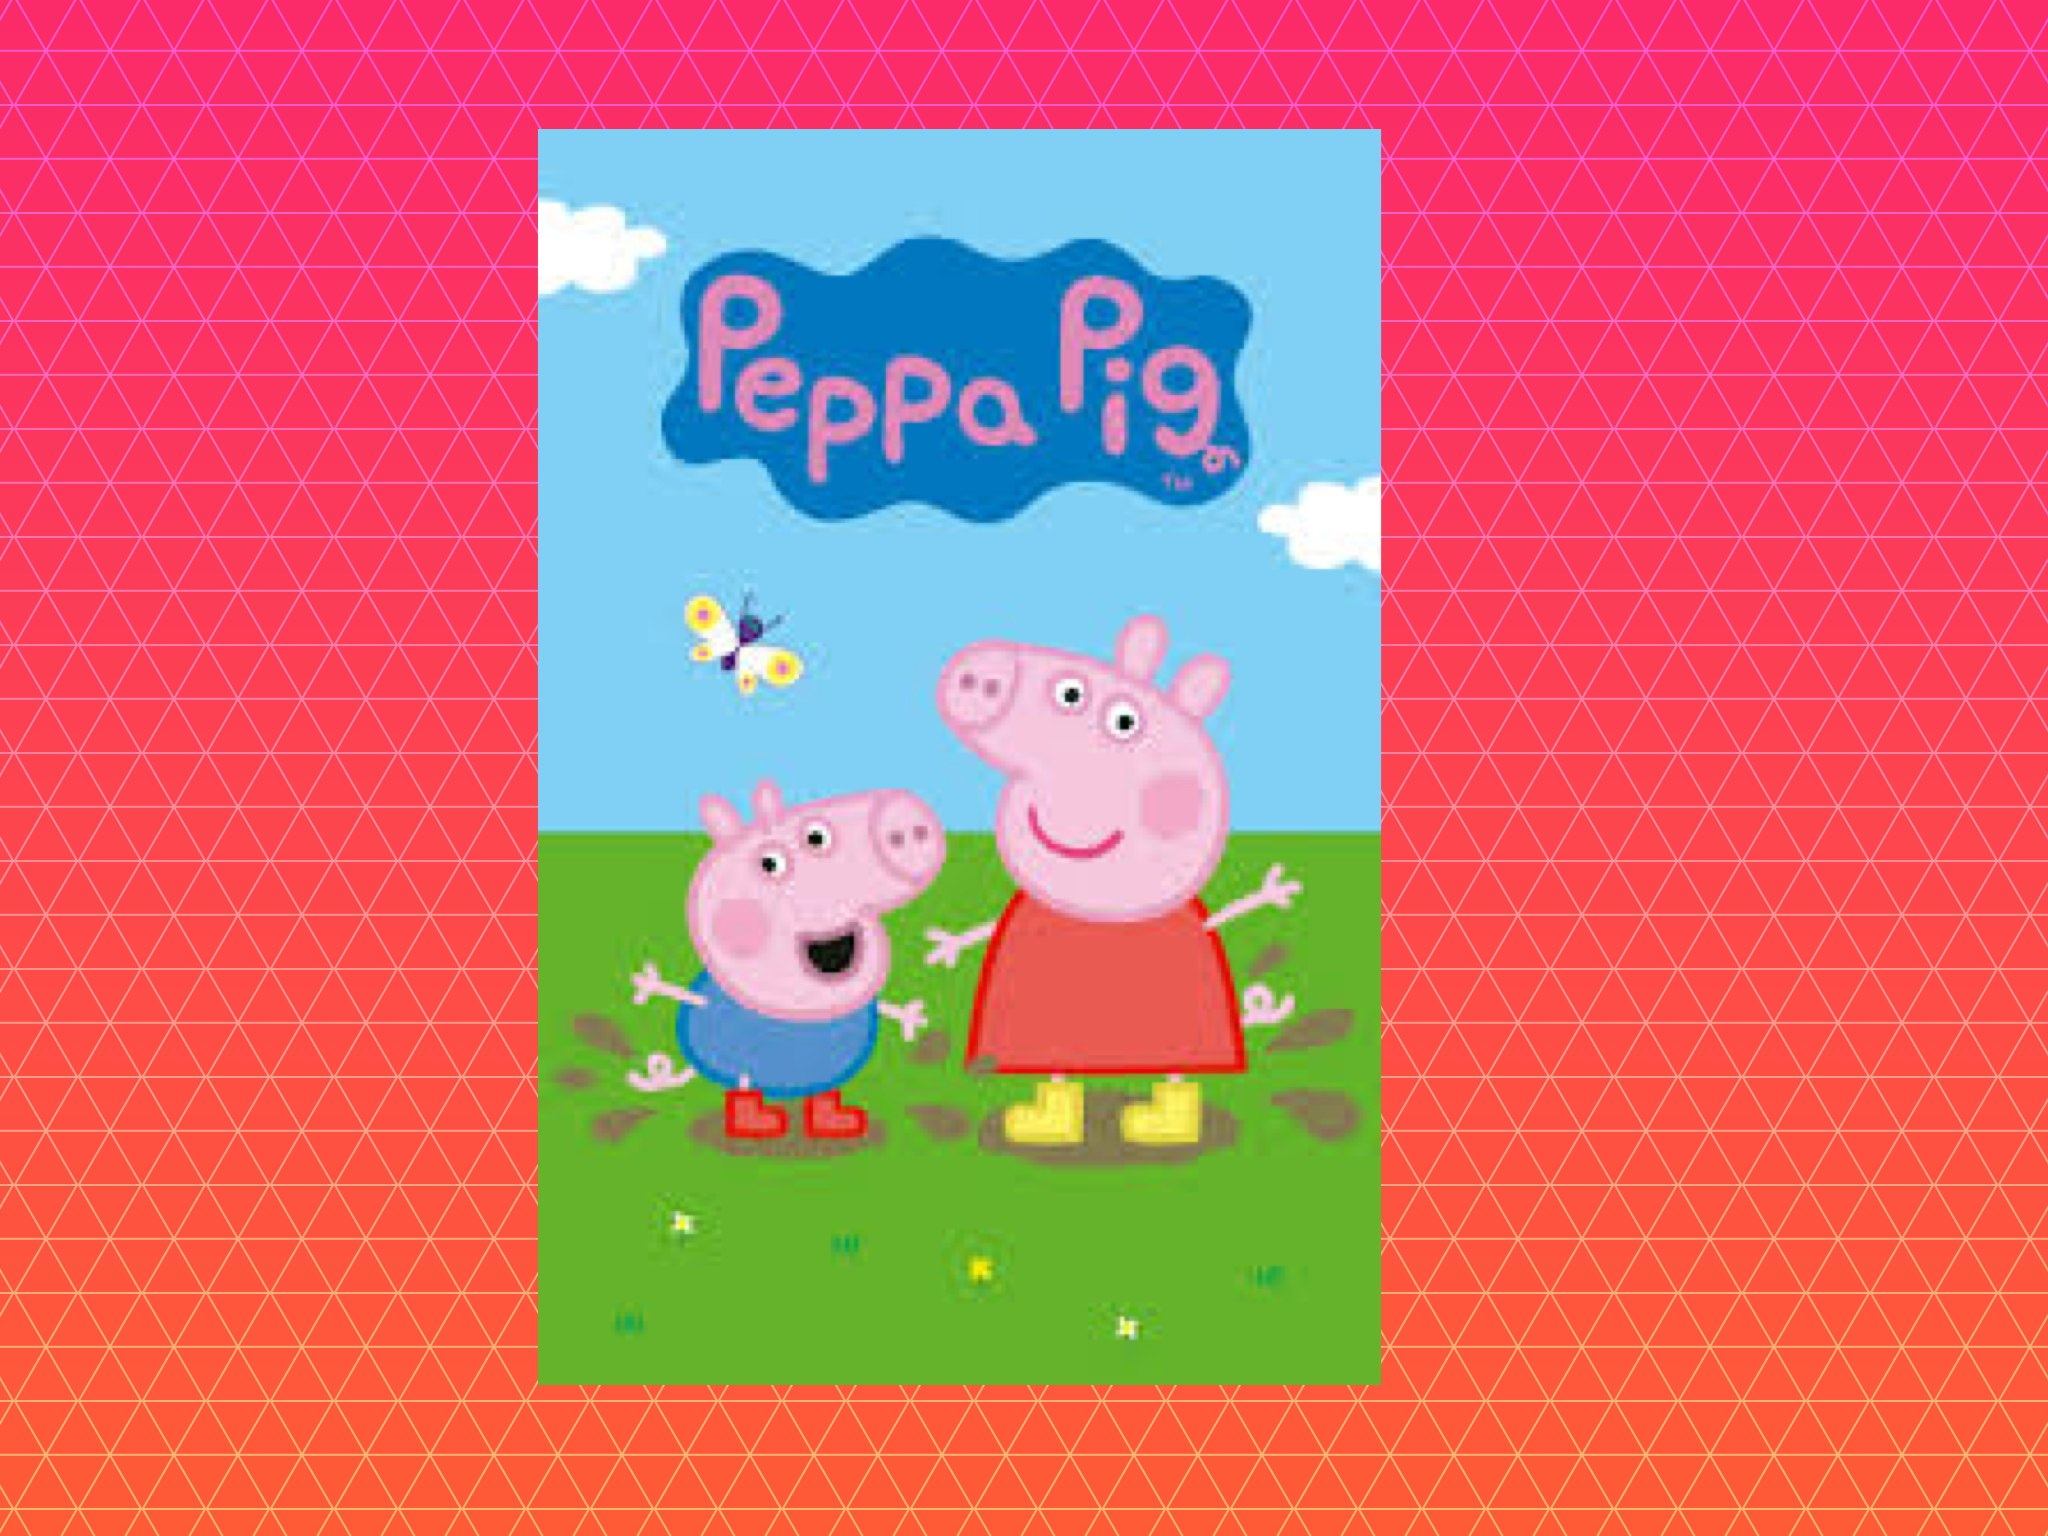 Play Peppa's Words by Nadia Muwafi - on TinyTap